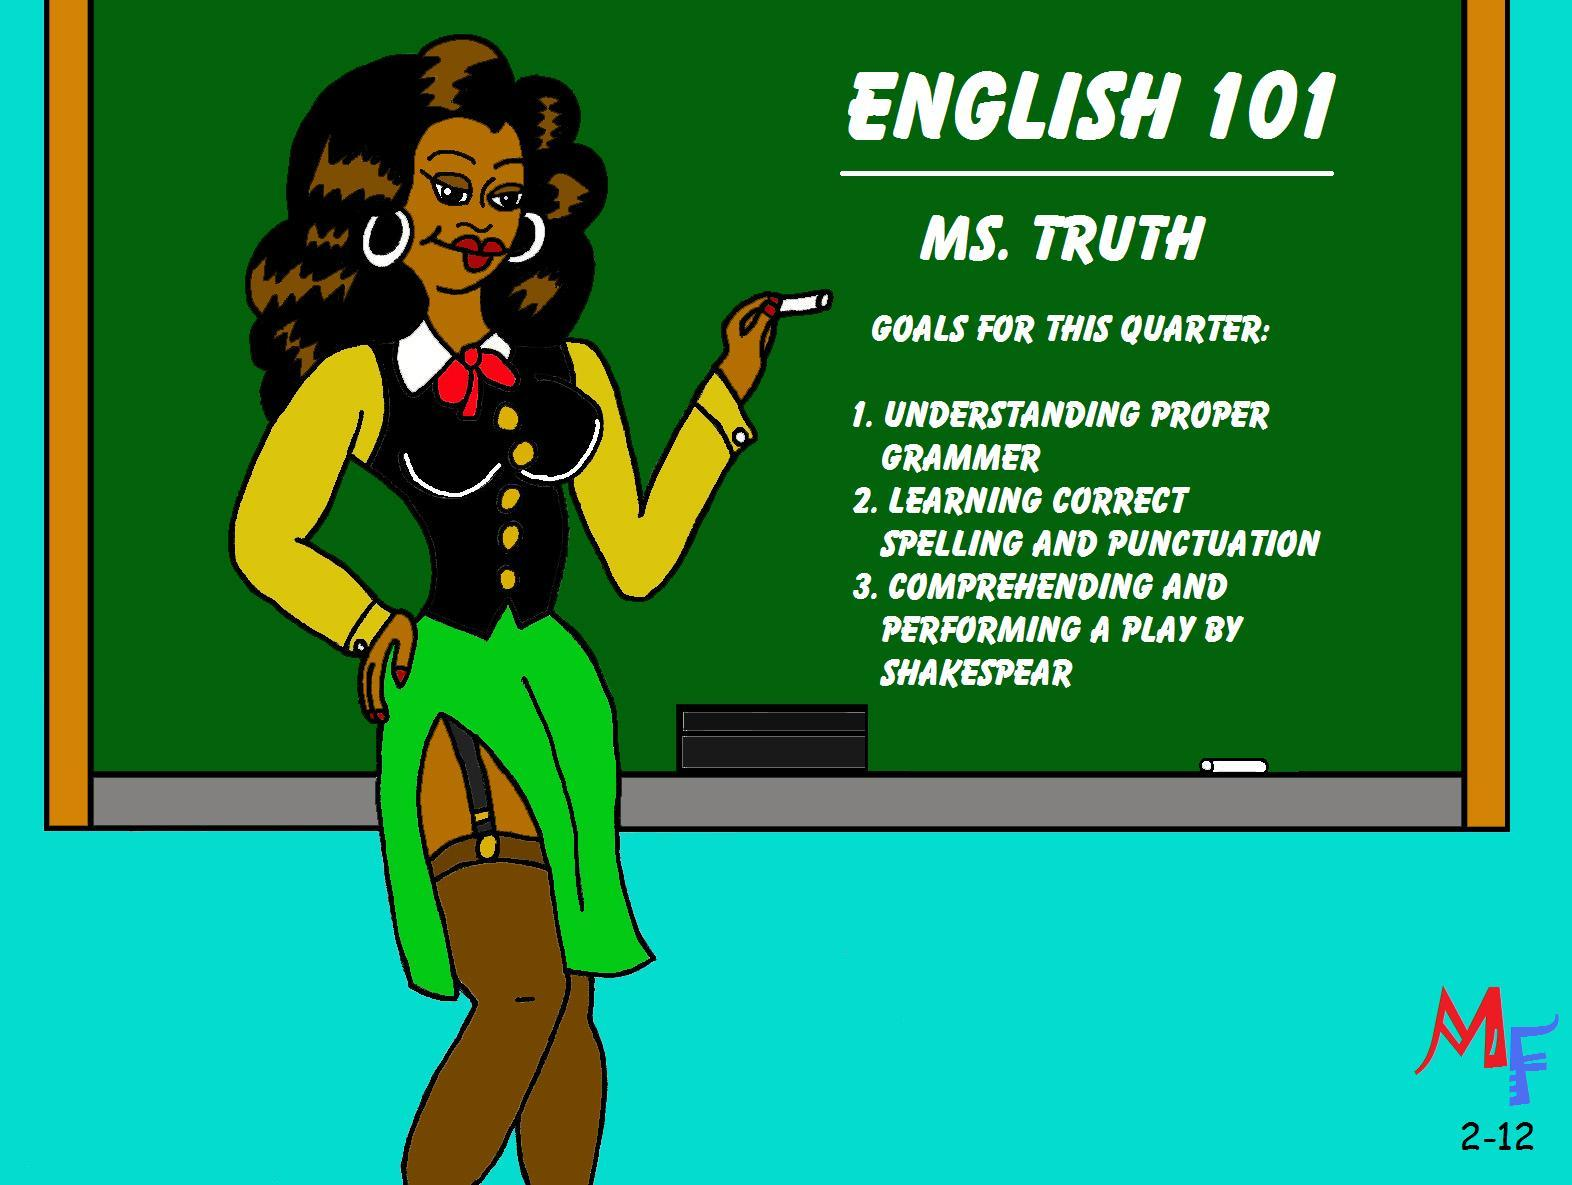 Ms. Truth